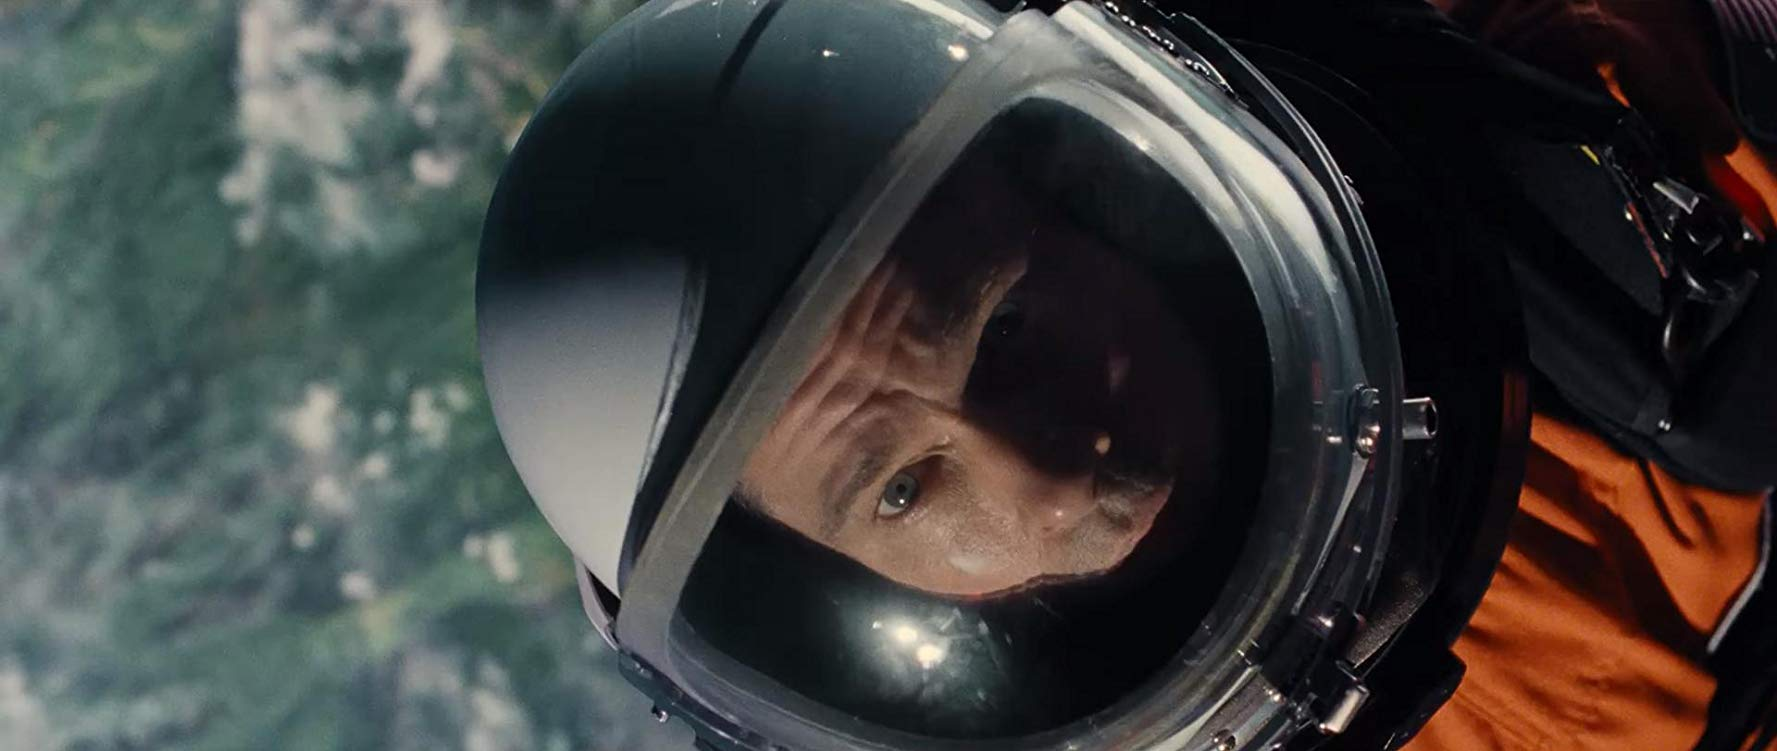 Ad Astra gets lost in its own brilliance